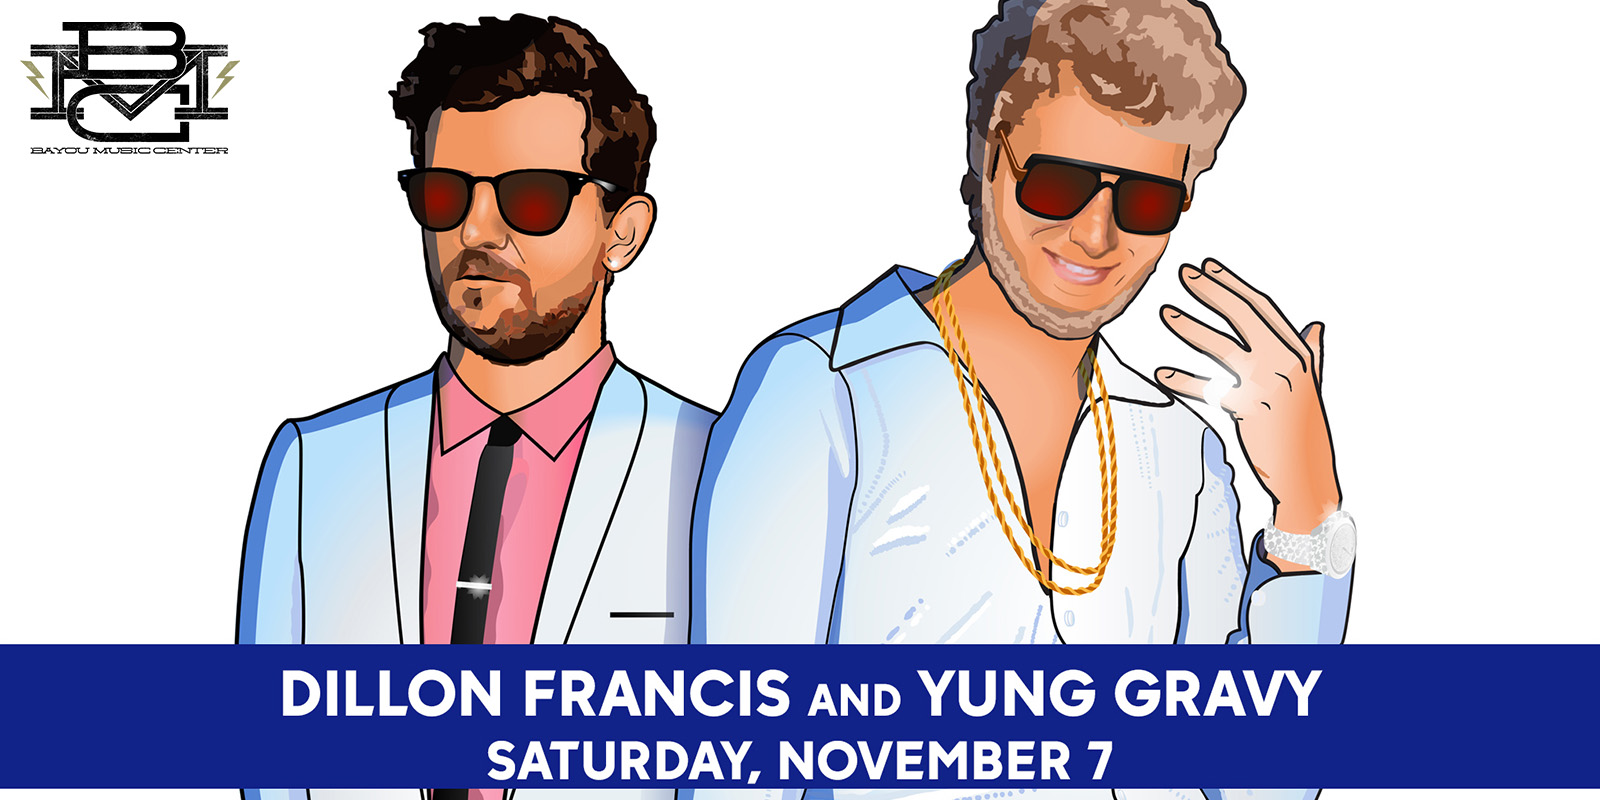 Dillon Francis x Yung Gravy: Sugar, Spice and Everything Ice Tou